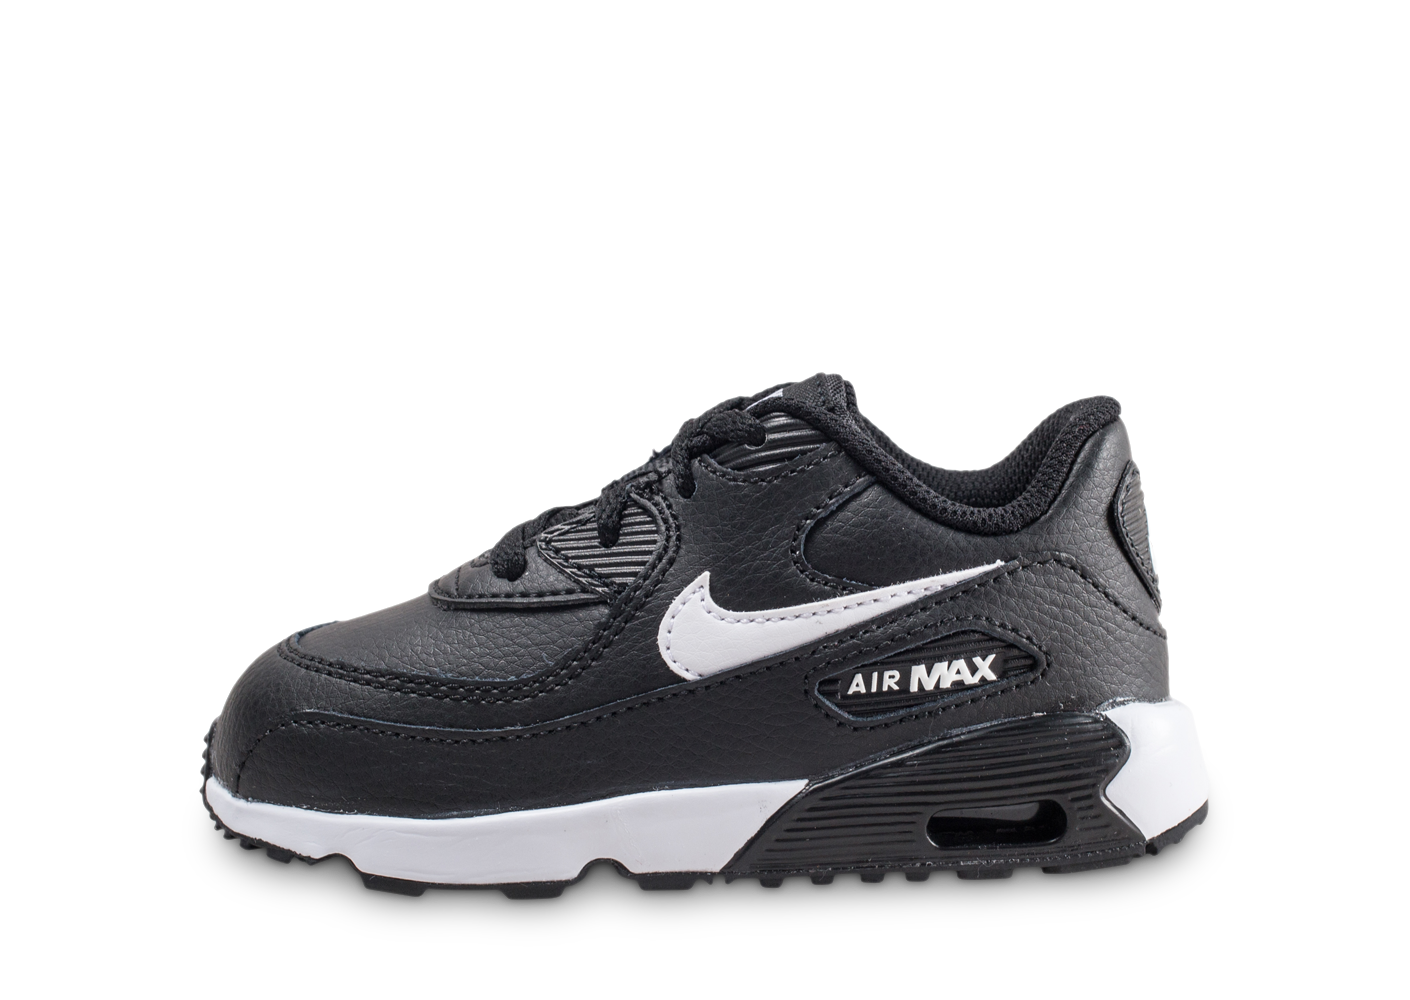 Nike nike air max 90 leather noire et blanche...